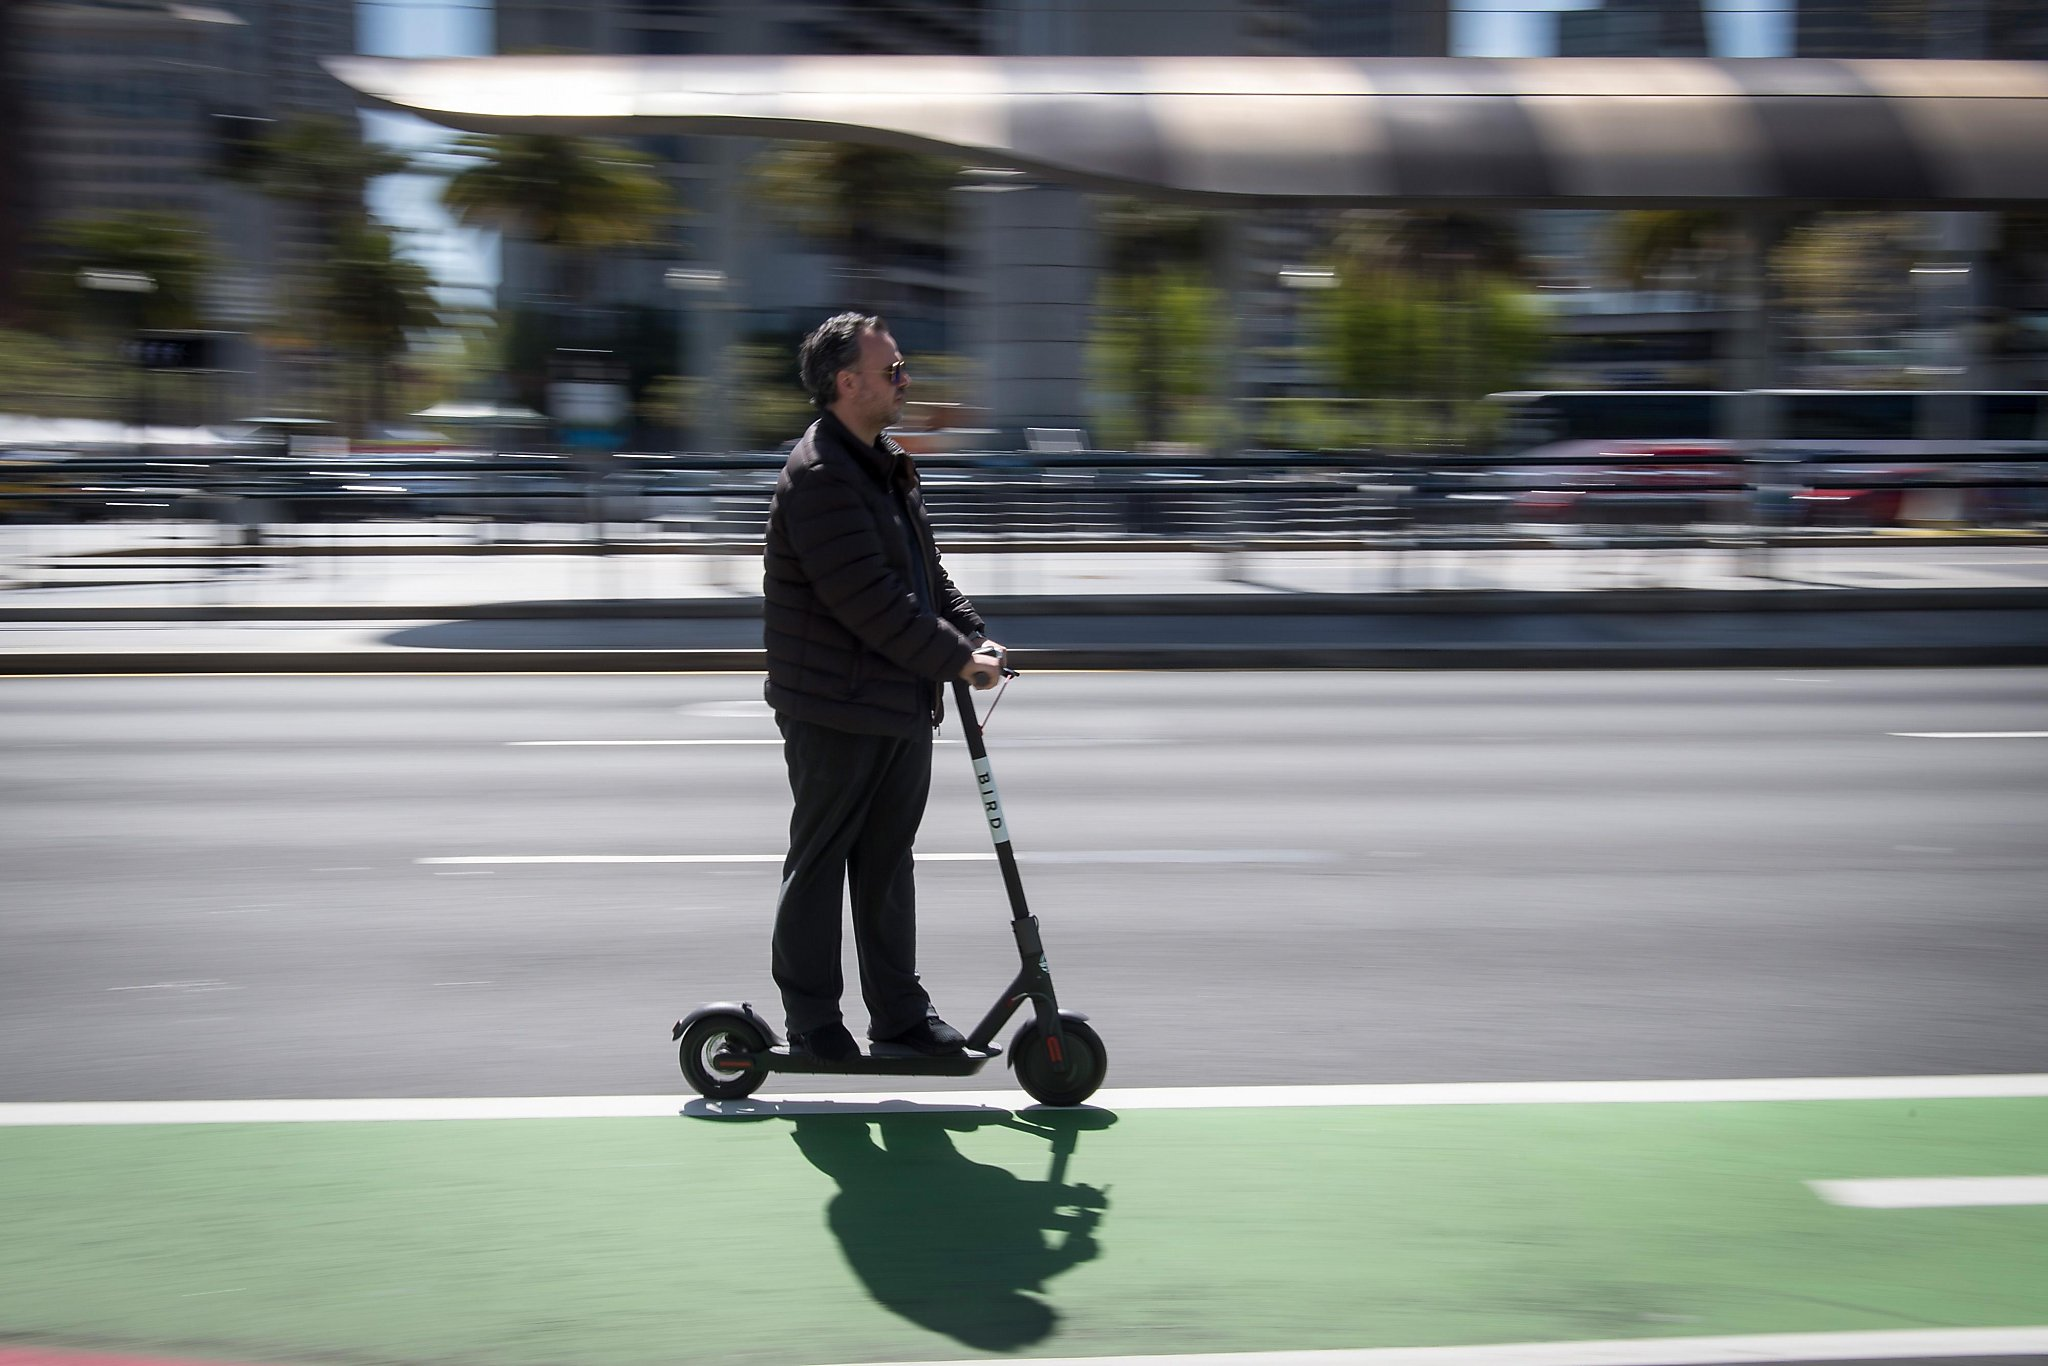 San Francisco Has No Interest In Banning Electric Scooters